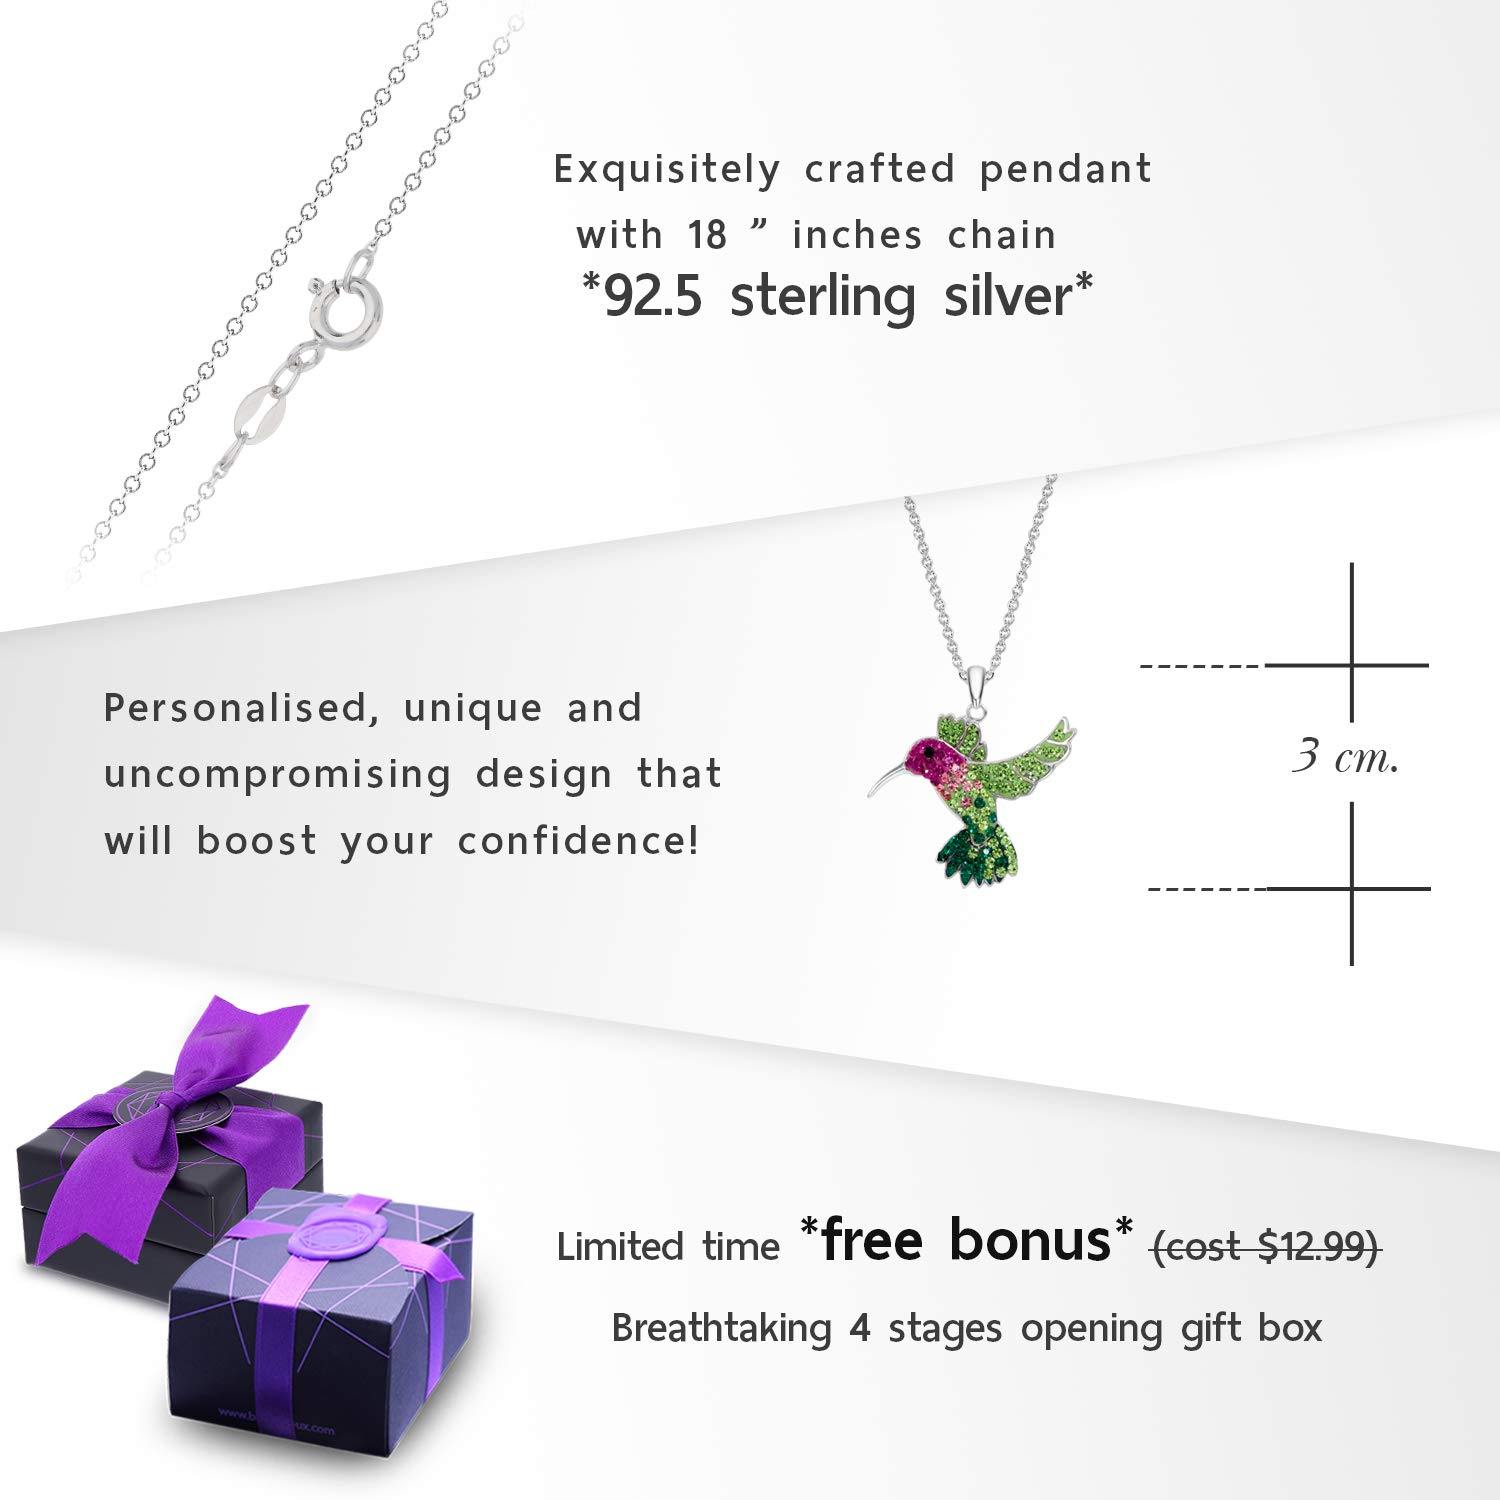 Colorful Flying Hummingbird Crystal Pendant Necklace Never Rust 925 Sterling Silver for Women, Girls & Teens, Natural & Hypoallergenic Chain with Free Breathtaking Gift Box for Special Moments of Love by BLING BIJOUX Jewelry (Image #4)